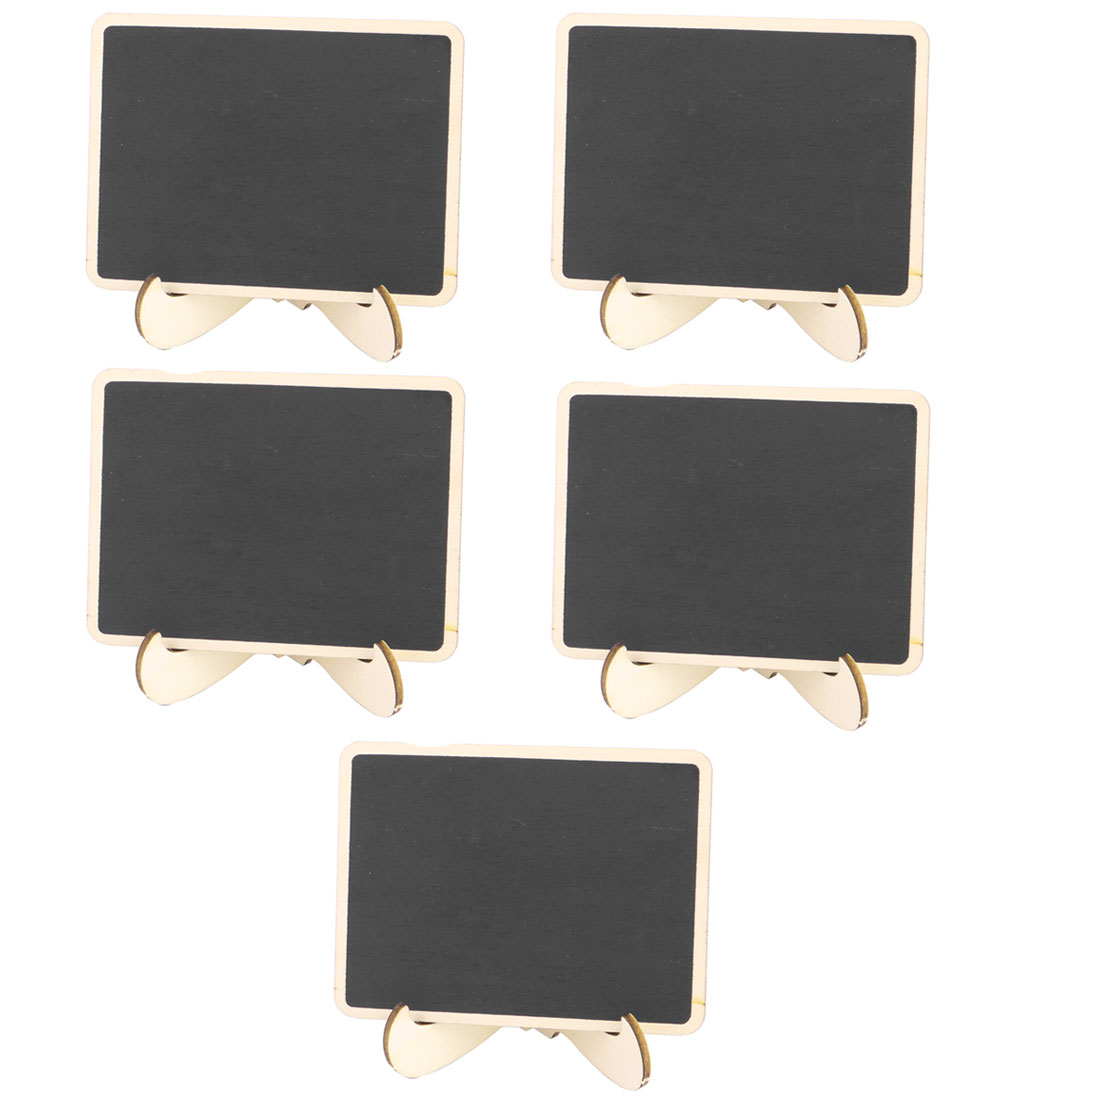 Wedding Wooden Rectangle Message Memo Standing Decor Chalkboard Blackboard 5pcs